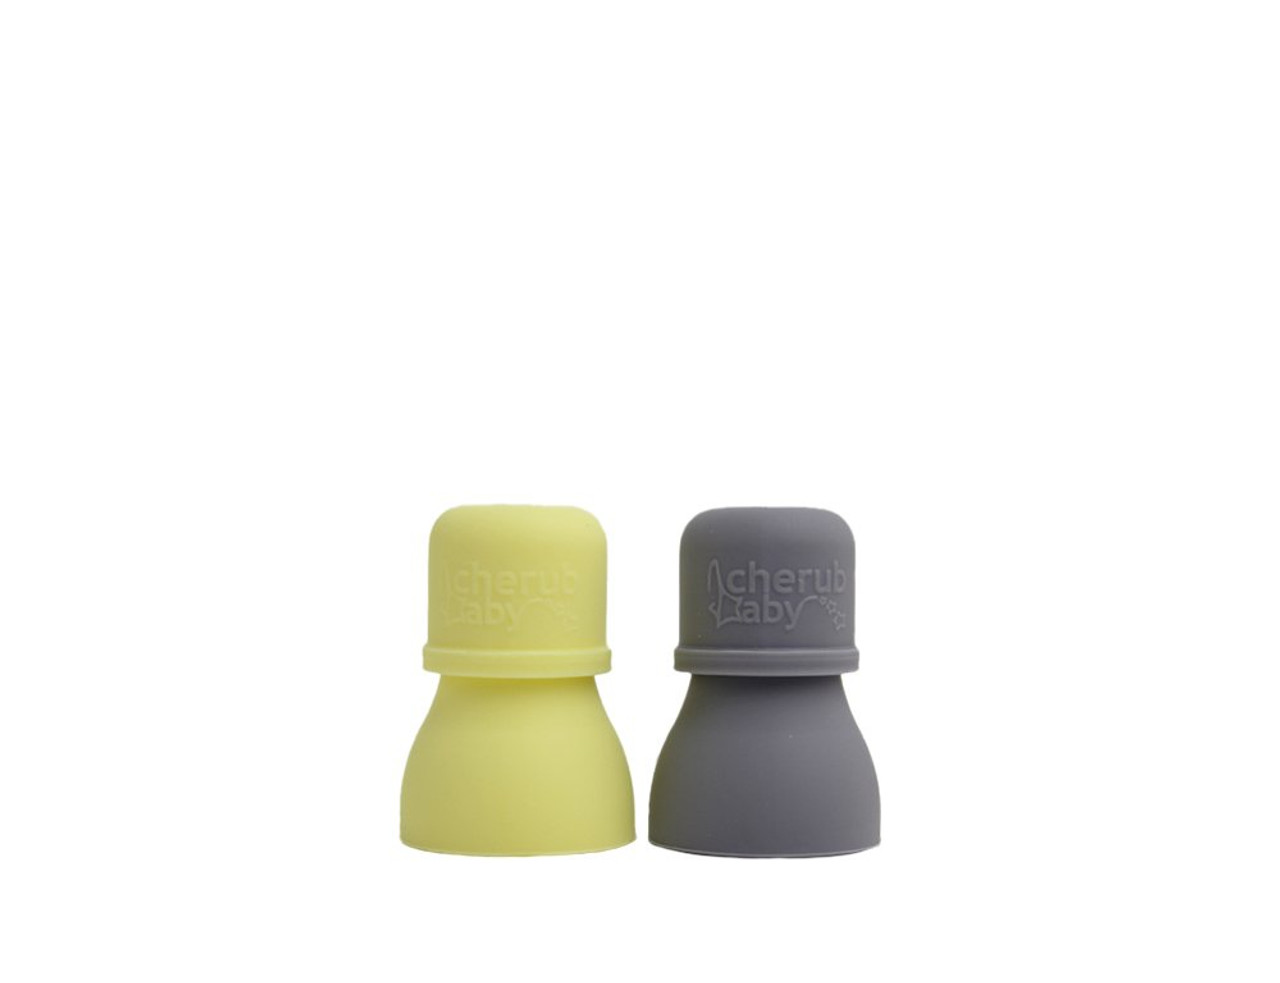 Cherub Baby Universal Food Pouch Spouts 2PK at Baby Barn Discounts Prevent spills and keep little mouths protected from sharp edges with these 100% food grade silicone spouts. Just pop them onto your favourite food pouches.